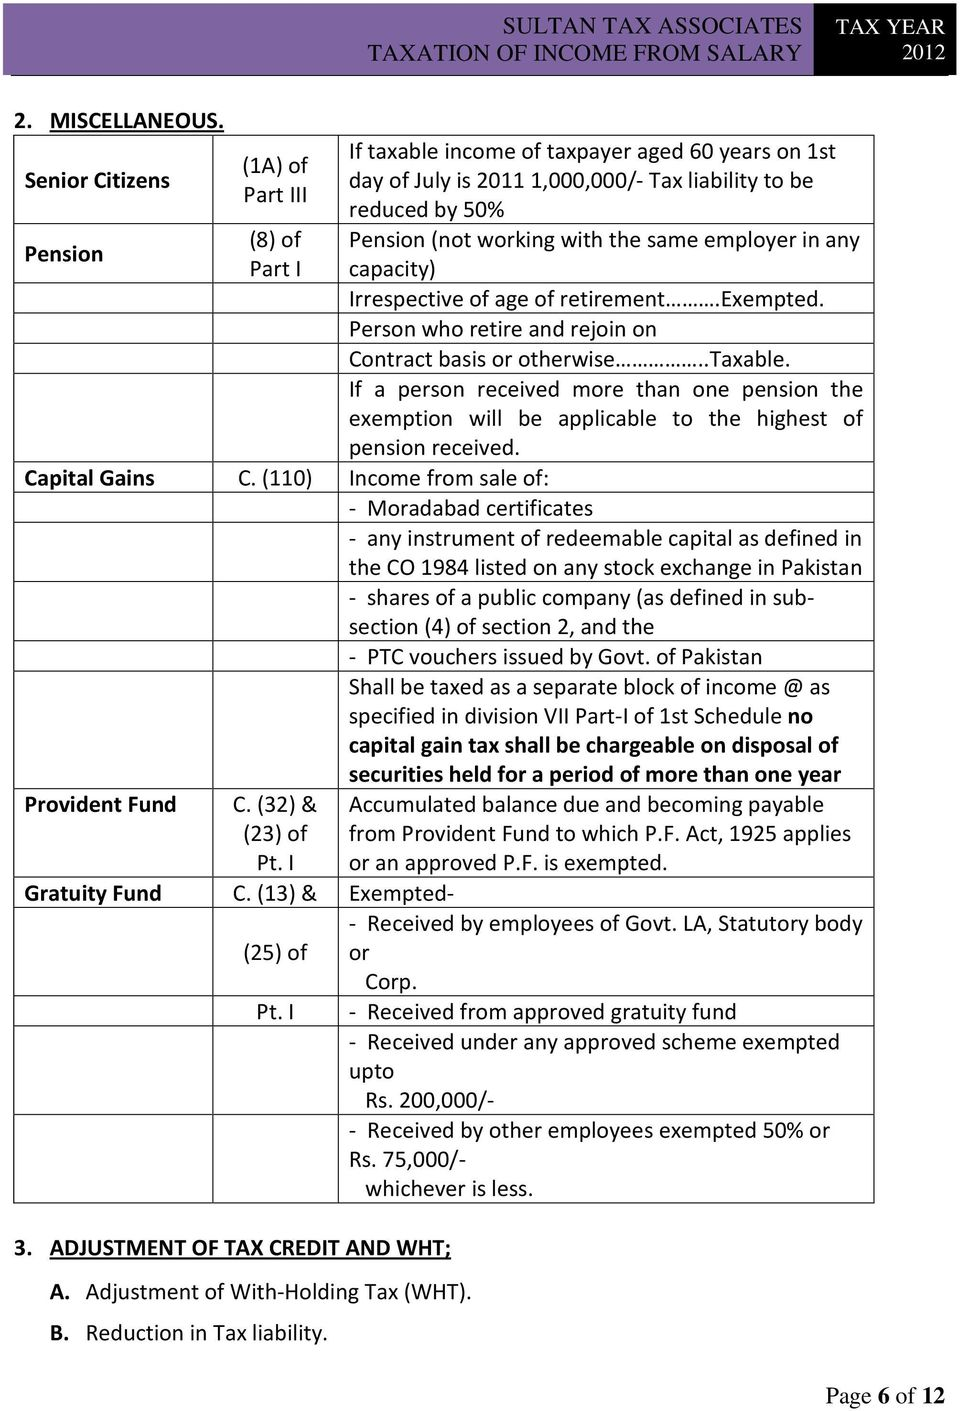 reduced by 50% Pension (not working with the same employer in any capacity) Irrespective of age of retirement.exempted. Person who retire and rejoin on Contract basis or otherwise..taxable.